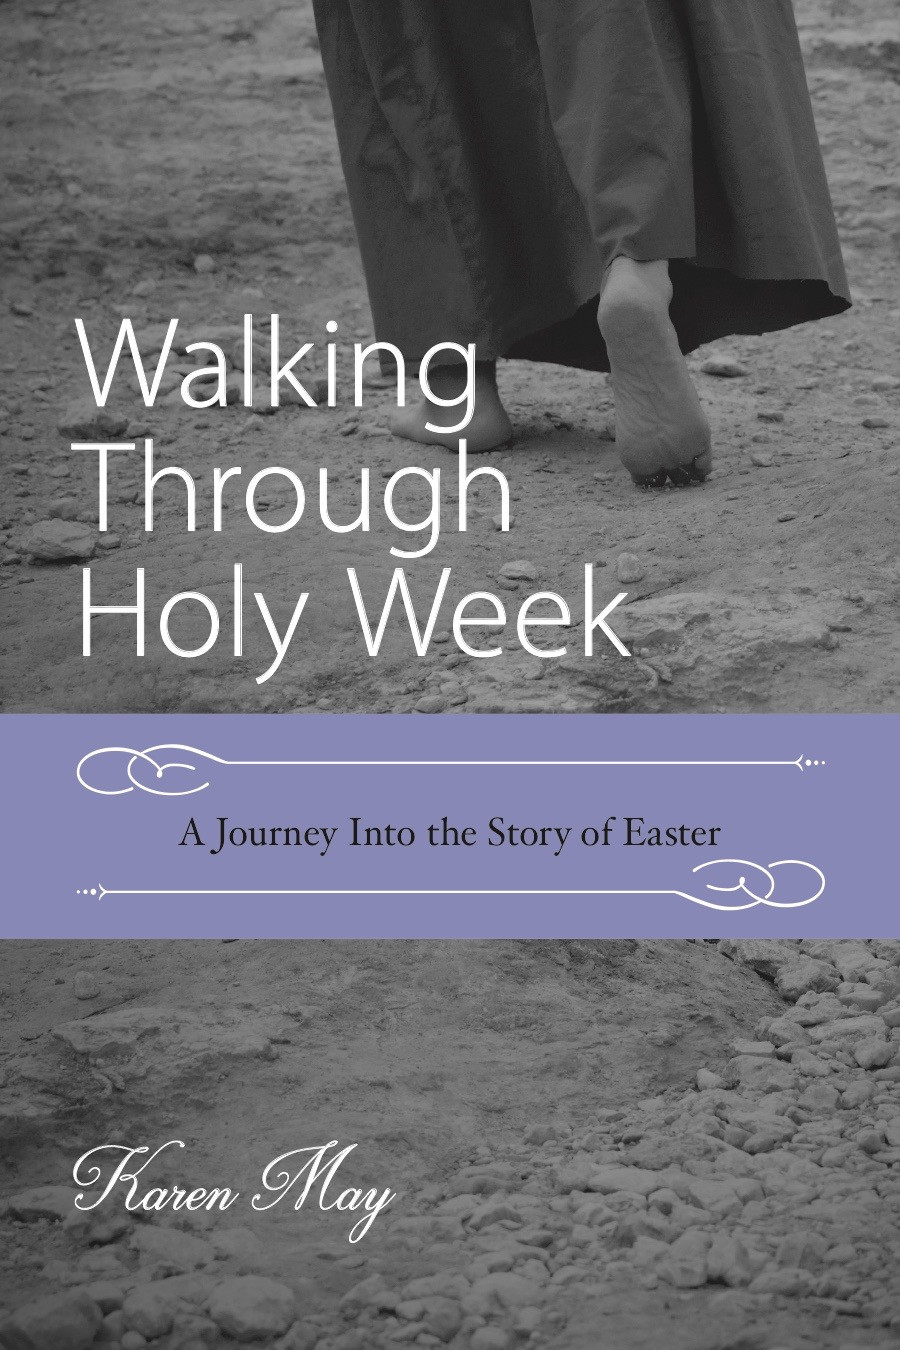 Walking Through Holy Week, A Journey into the Story of Easter, Lenten Easter Bible study, Karen May, Amayzing Graces